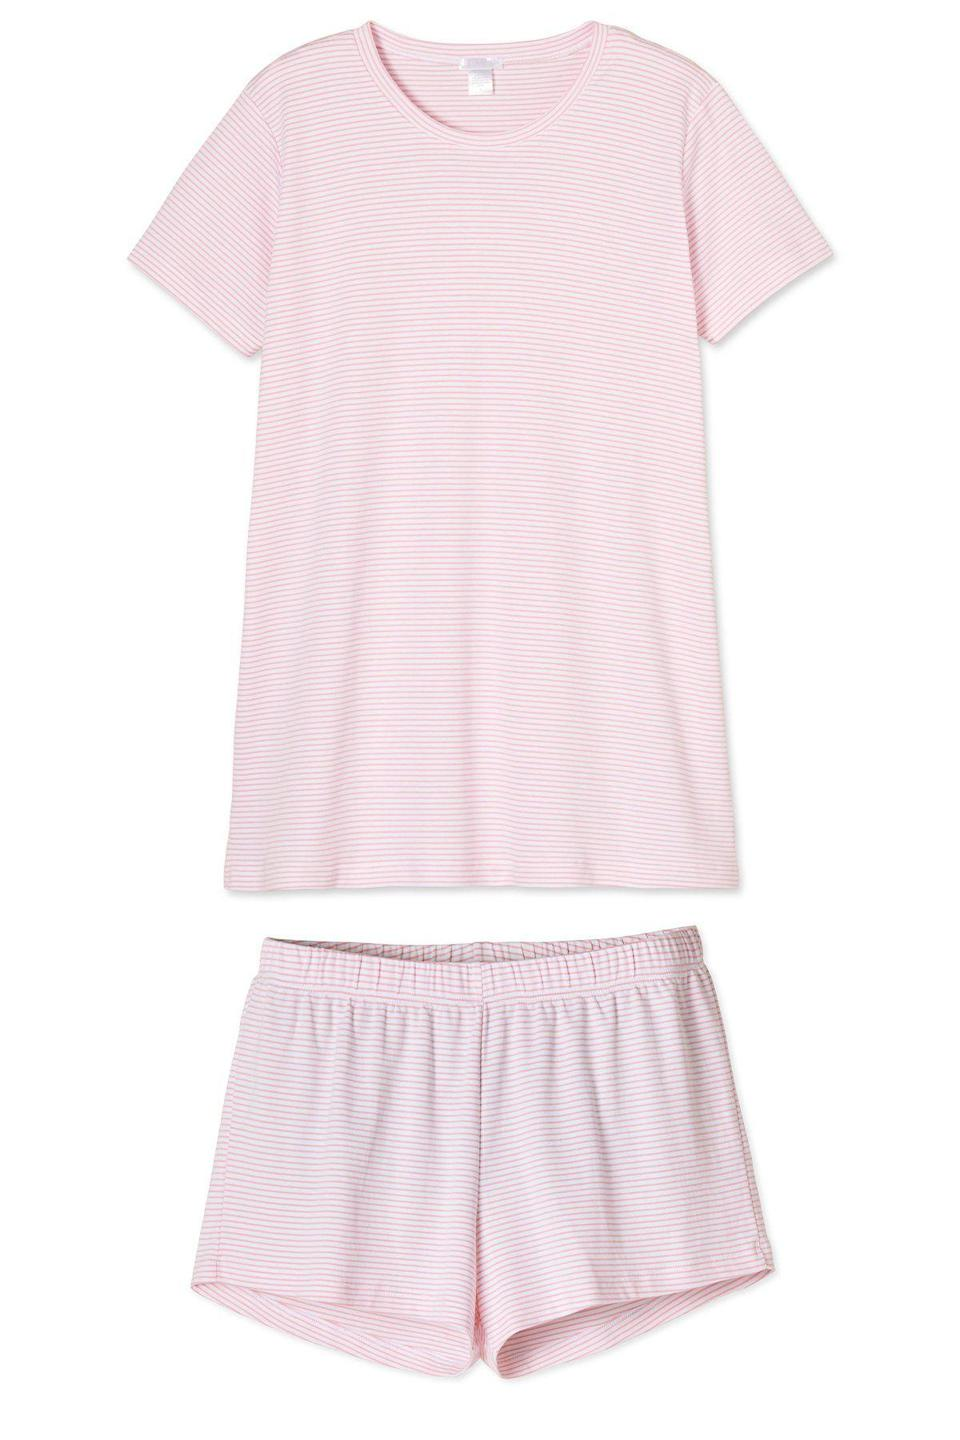 """<p>lakepajamas.com</p><p><strong>$94.00</strong></p><p><a href=""""https://lakepajamas.com/collections/maternity/products/lily-maternity-weekend-shorts-set"""" rel=""""nofollow noopener"""" target=""""_blank"""" data-ylk=""""slk:Shop Now"""" class=""""link rapid-noclick-resp"""">Shop Now</a></p><p>Pregnancy is uncomfortable, before and after the baby is born, and all new moms will welcome a comfortable pair of luxurious pima cotton pajamas from <a href=""""https://lakepajamas.com/"""" rel=""""nofollow noopener"""" target=""""_blank"""" data-ylk=""""slk:Lake Pajamas"""" class=""""link rapid-noclick-resp"""">Lake Pajamas</a>.</p>"""